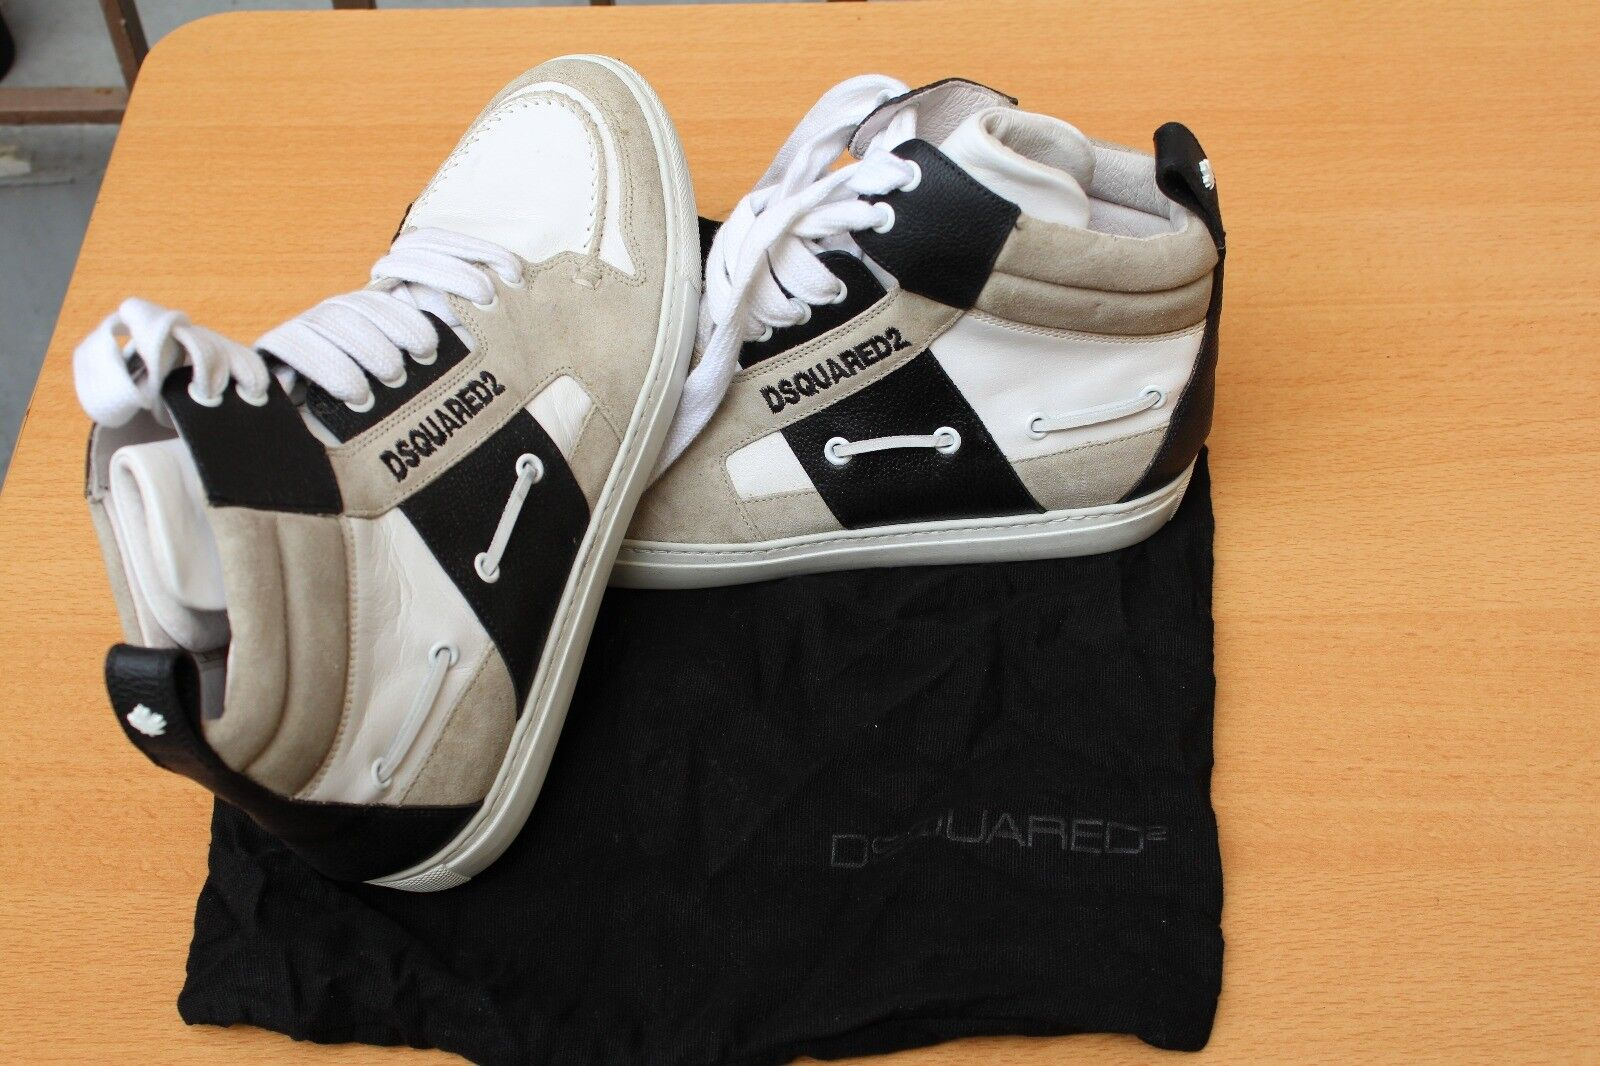 9c4a1ecb57 CHAUSSURE SNEAKER MONTANTE DSQUARED 42 NEUF CUIR nnpswz2342-new ...